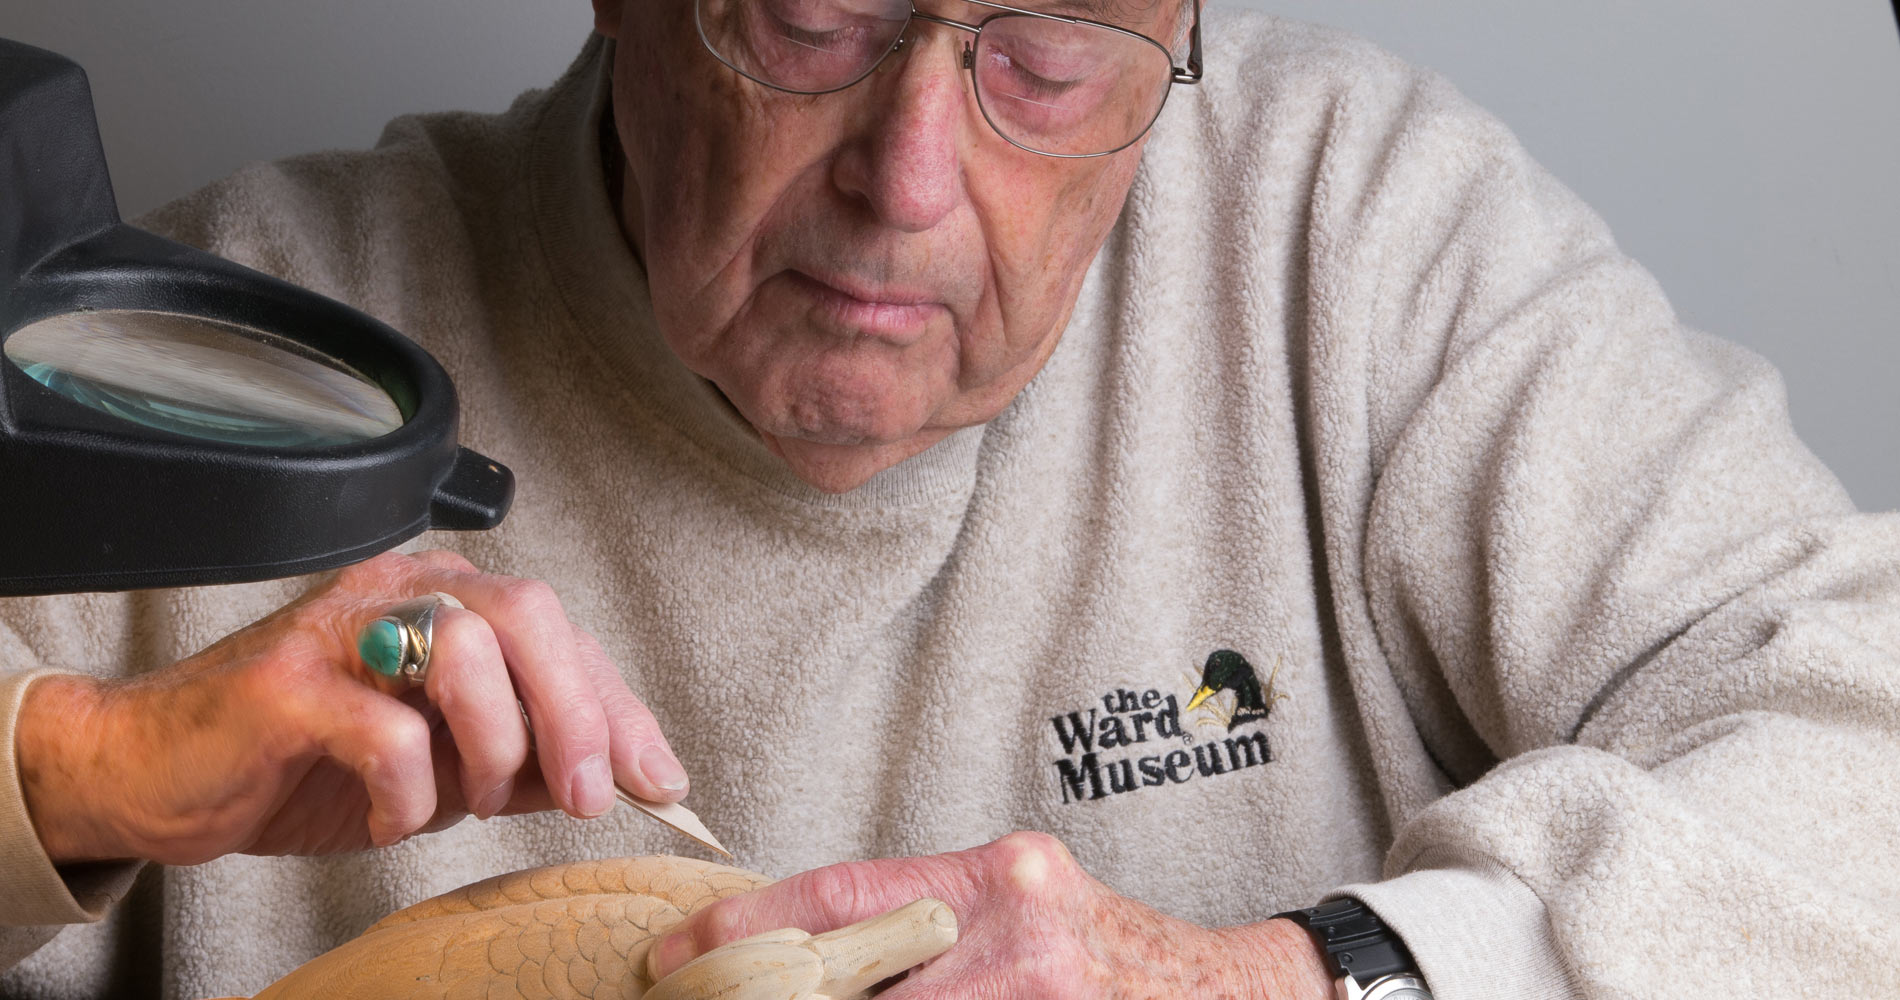 A carver at the Ward Museum - image courtesy Dave Harp / Bay Journal